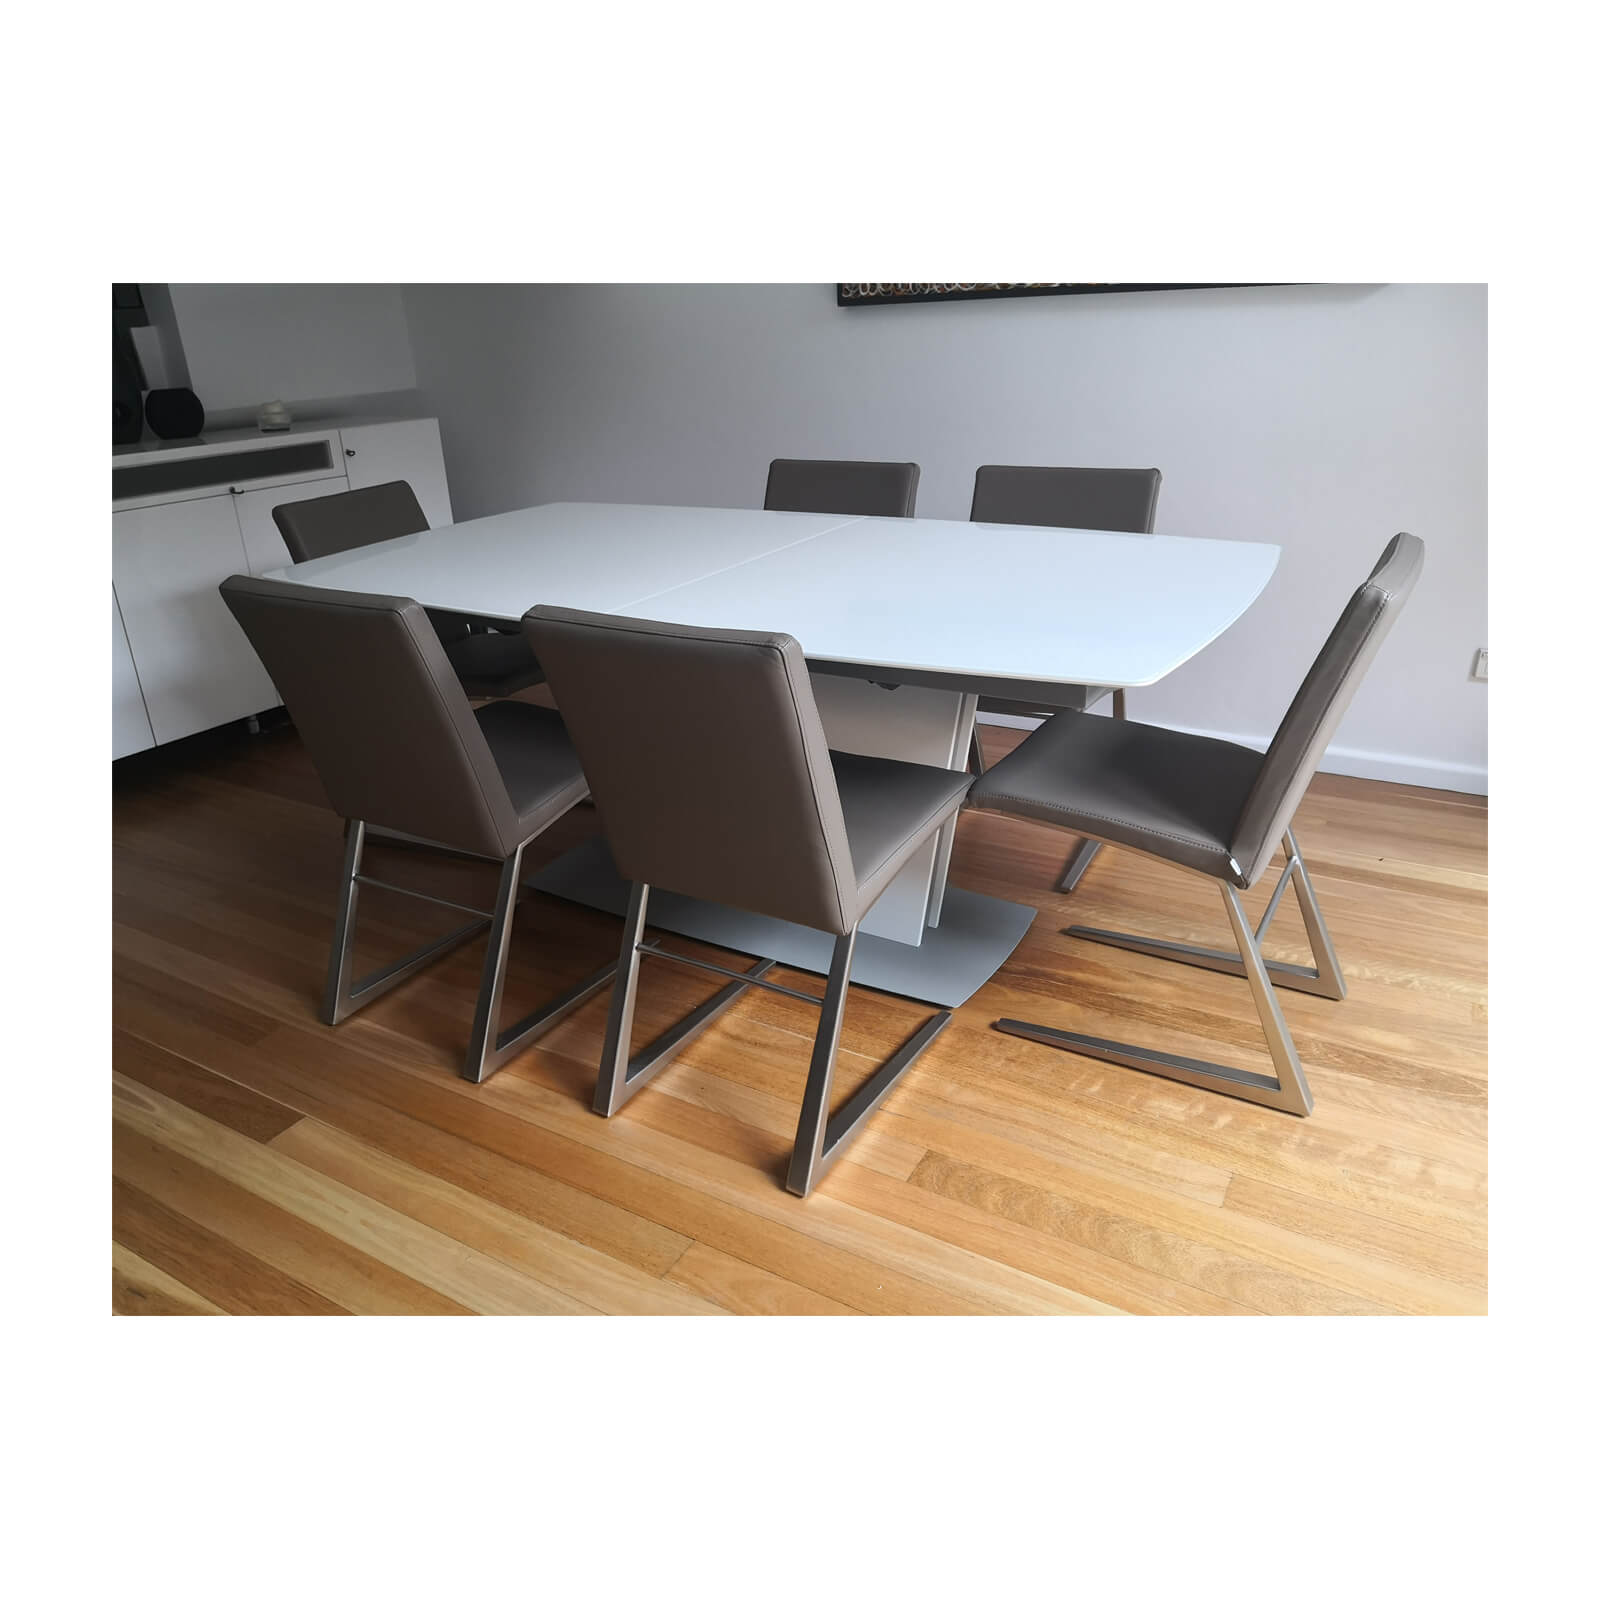 Bo Concept Milano extension dining table white set